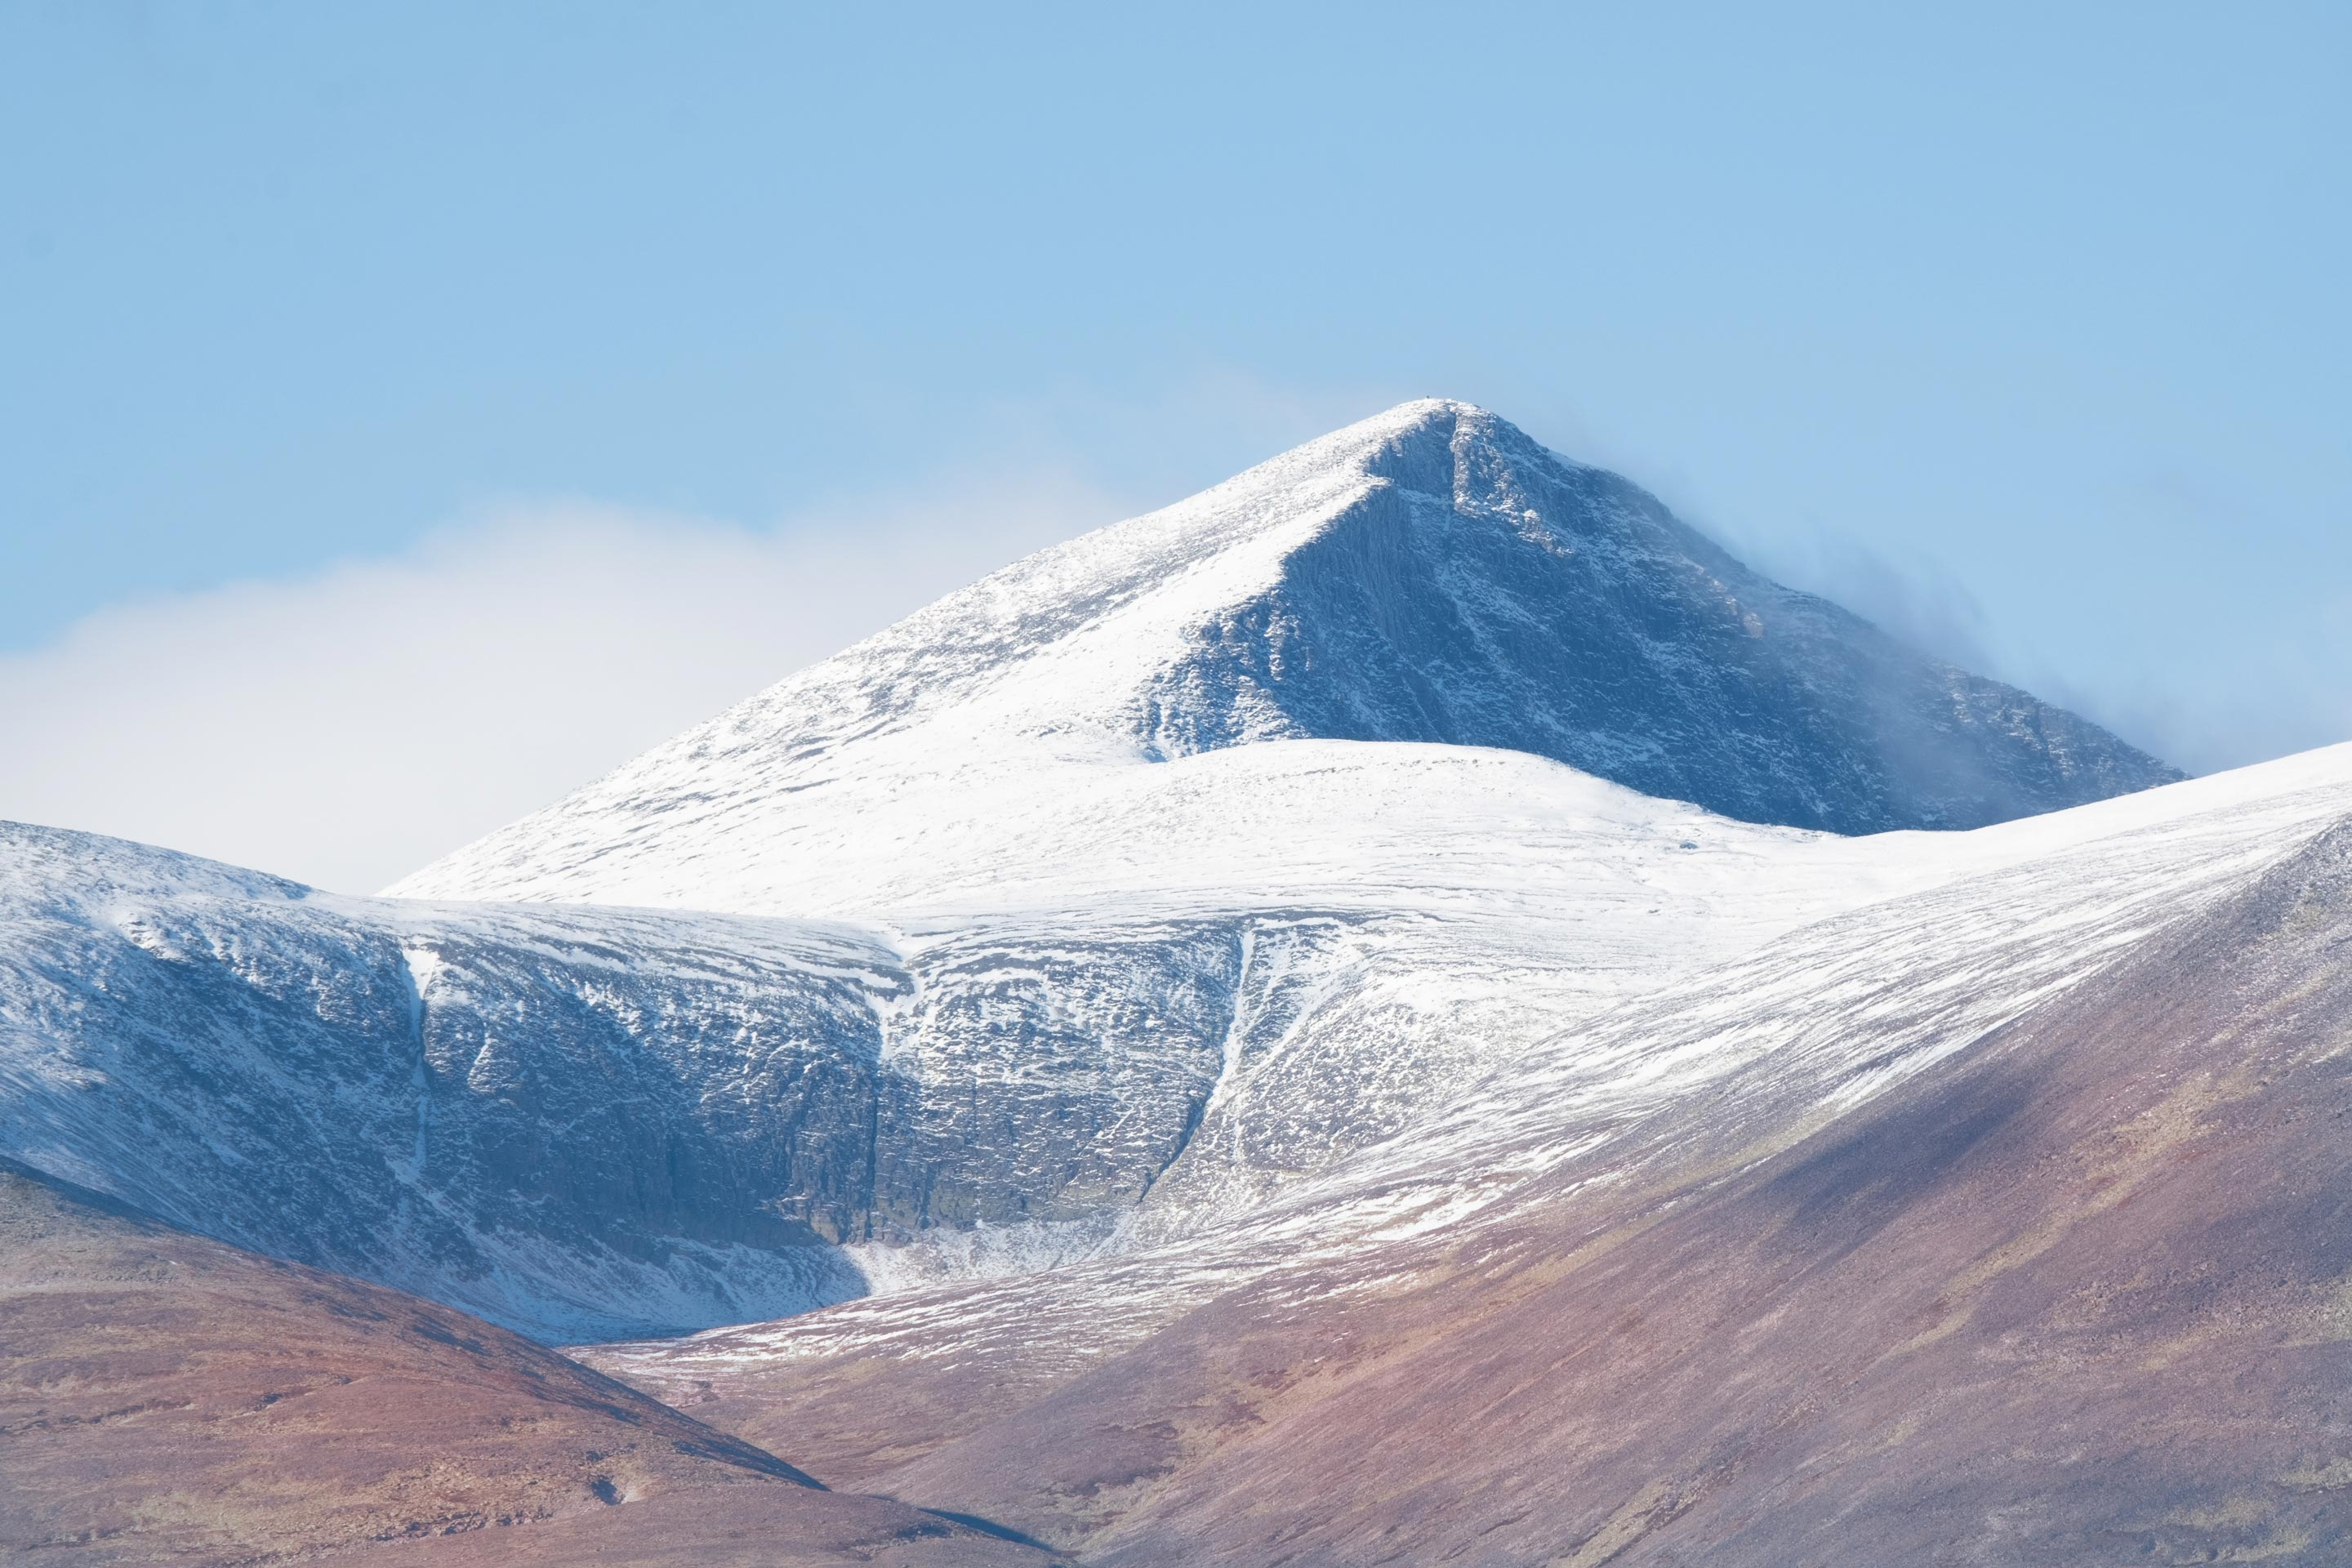 Majestic Norwegian mountain summit on a clear, blue day